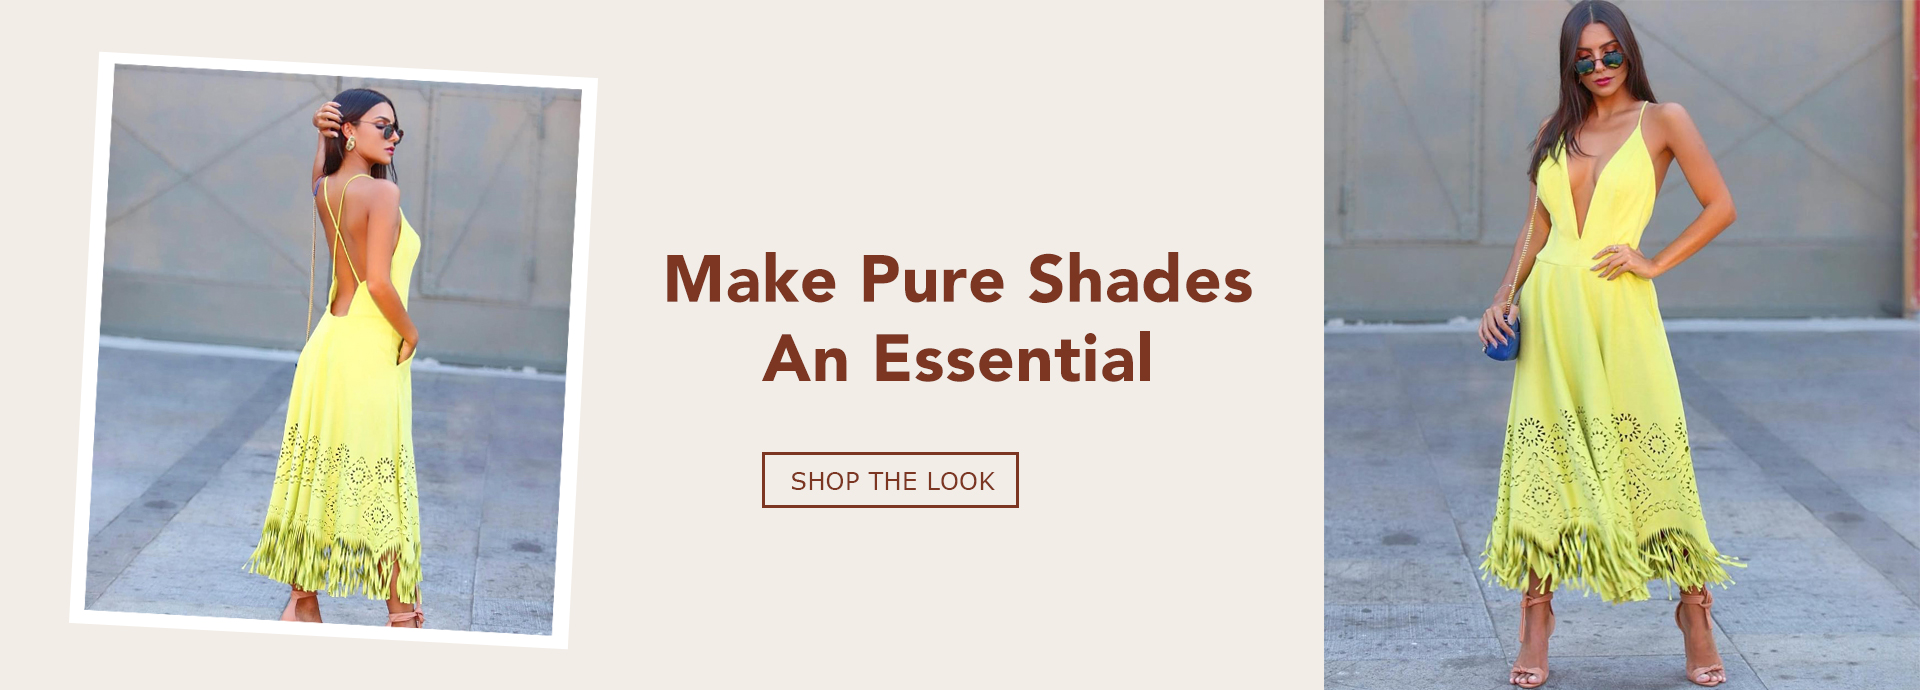 Make pure shades an essential